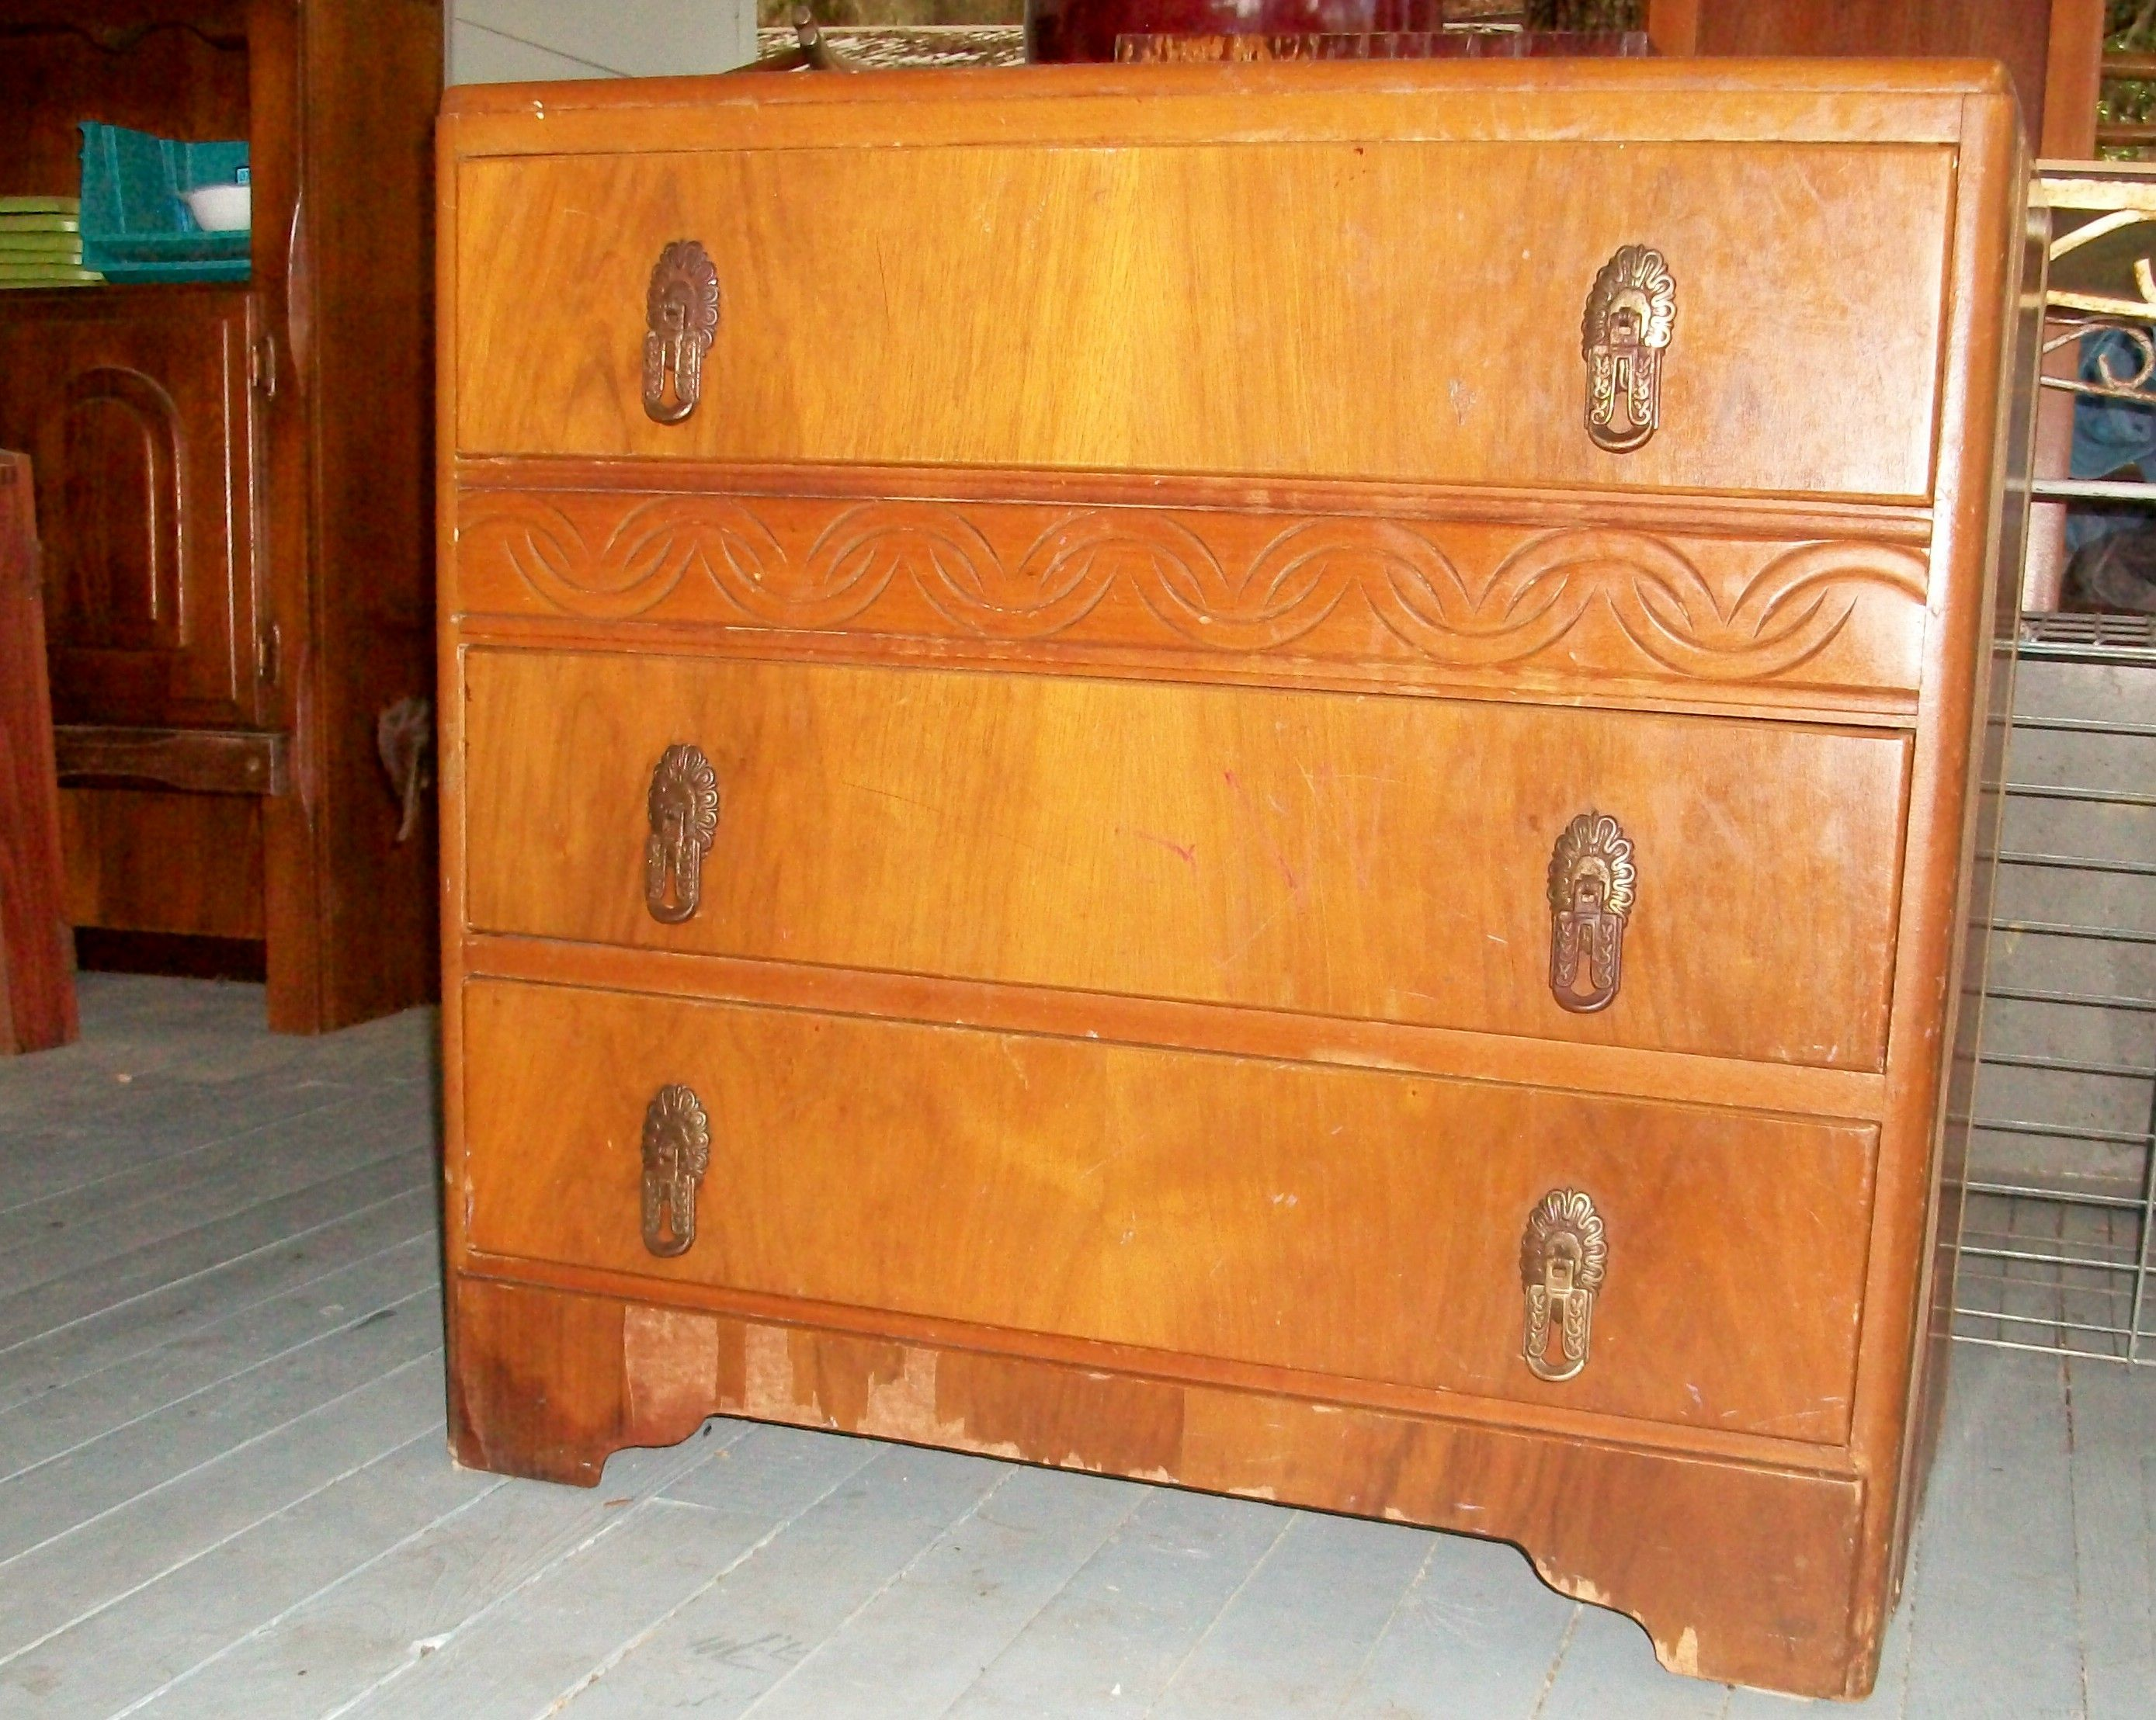 Lovely small dresser with a multitude of issues lots of missing